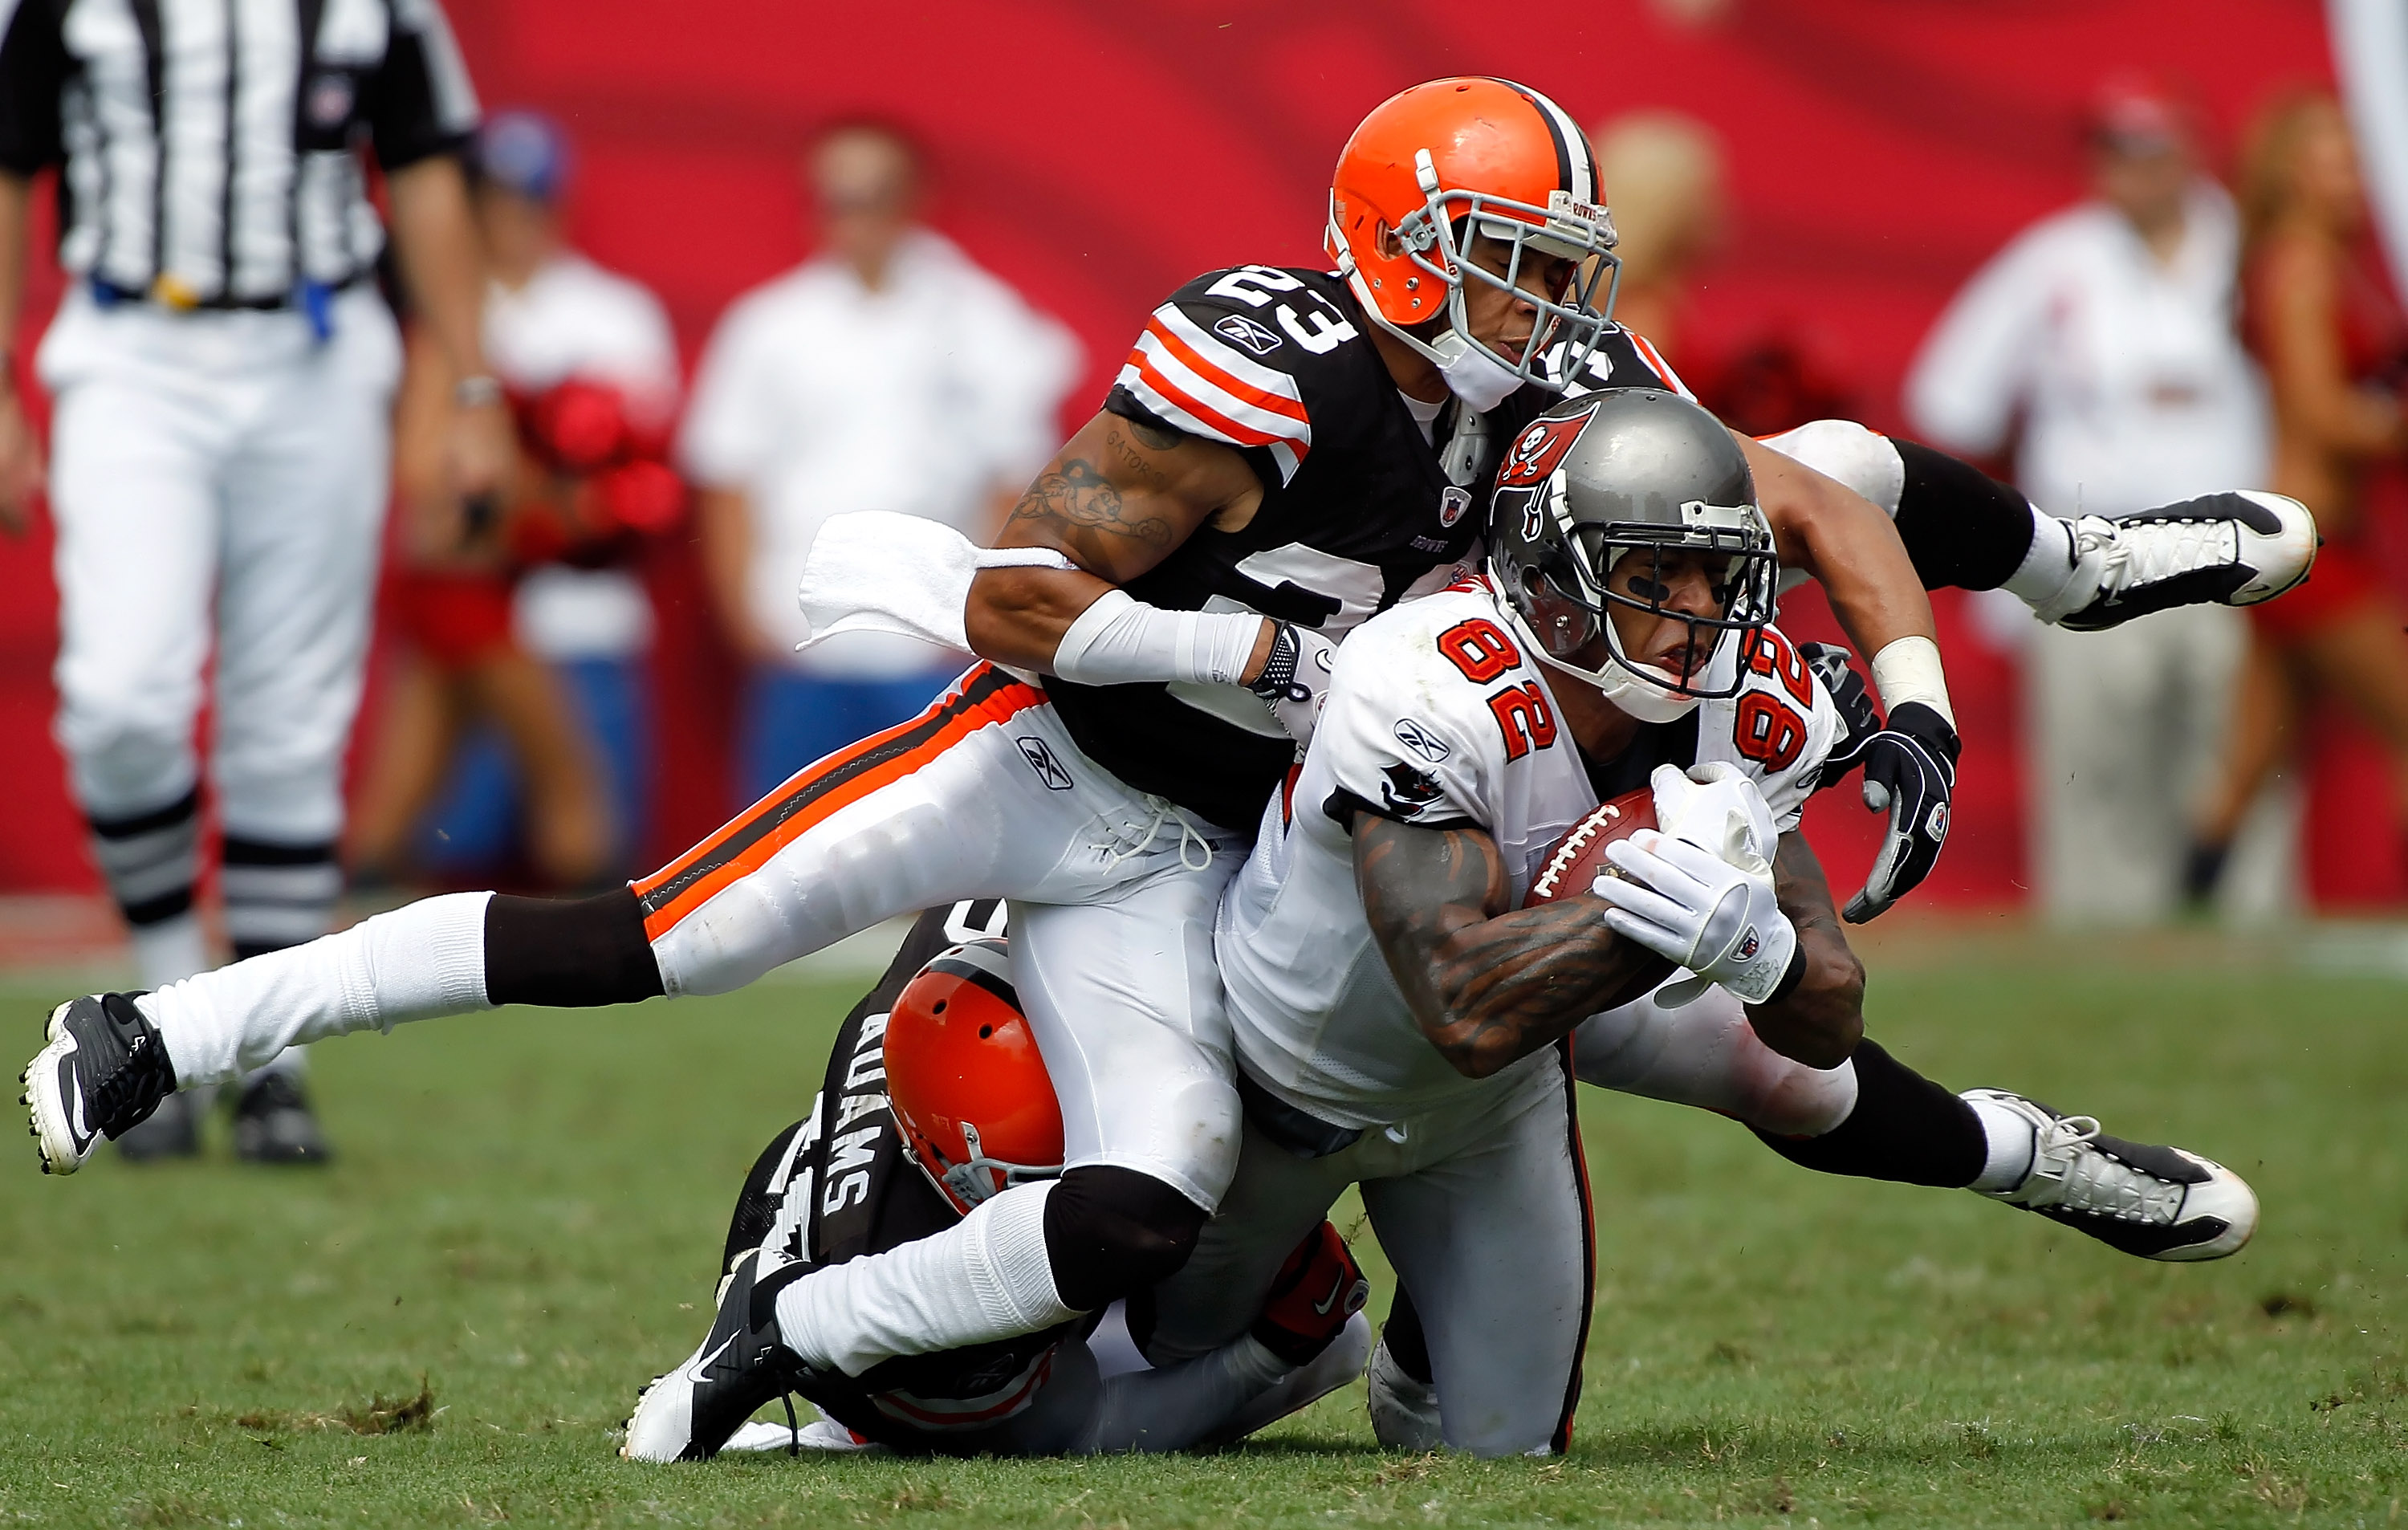 TAMPA, FL - SEPTEMBER 12:  Tight end Kellen Winslow #82 of the Tampa Bay Buccaneers is tackled by defenders Joe Haden #23 and Mike Adams #20 of the Cleveland Browns during the season opener game at Raymond James Stadium on September 12, 2010 in Tampa, Flo